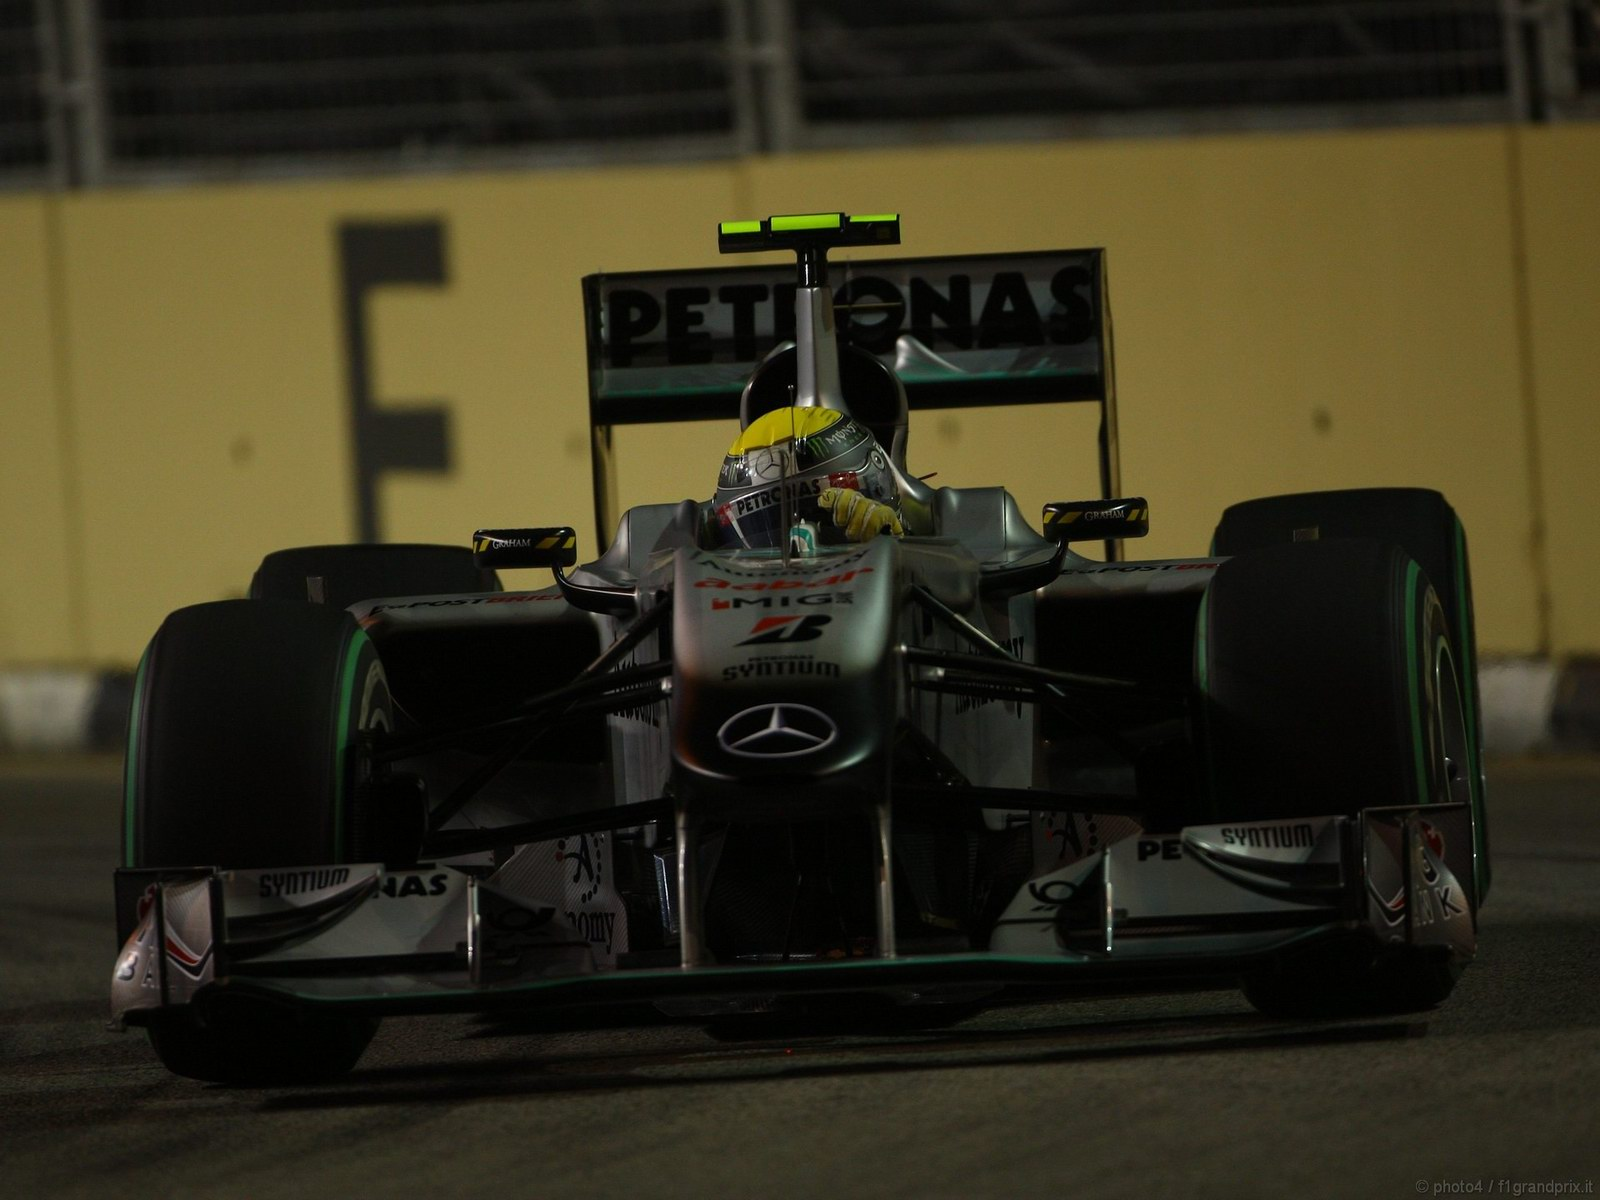 pojazdy - formula1 - gp_singapore_wallpapers_000057